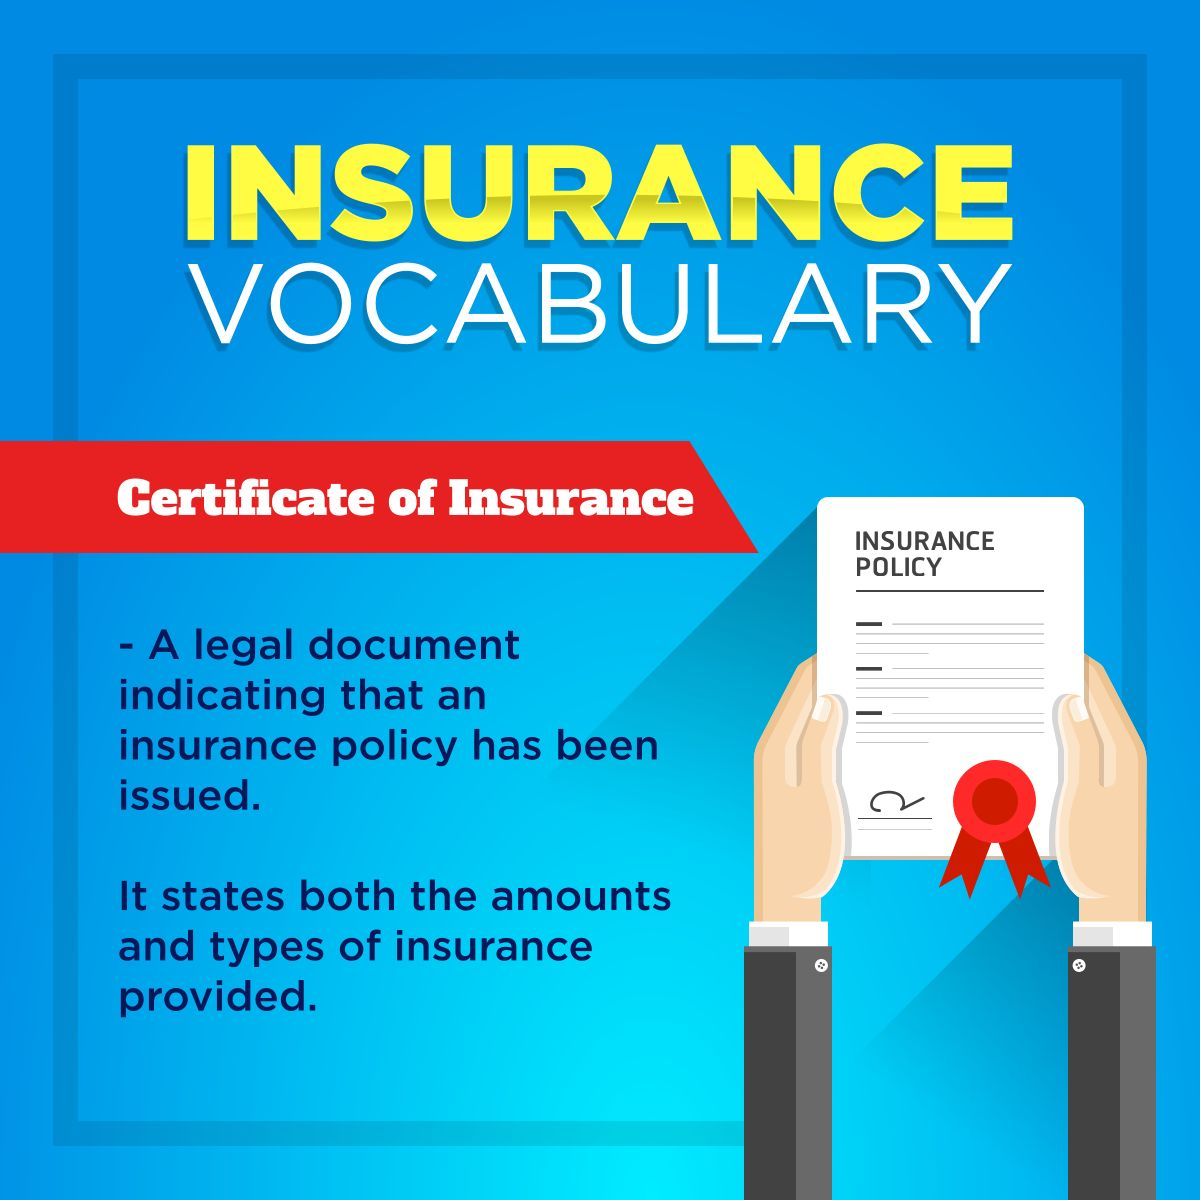 Insurance Vocabulary Insurance Kotteninsurance Vocabulary